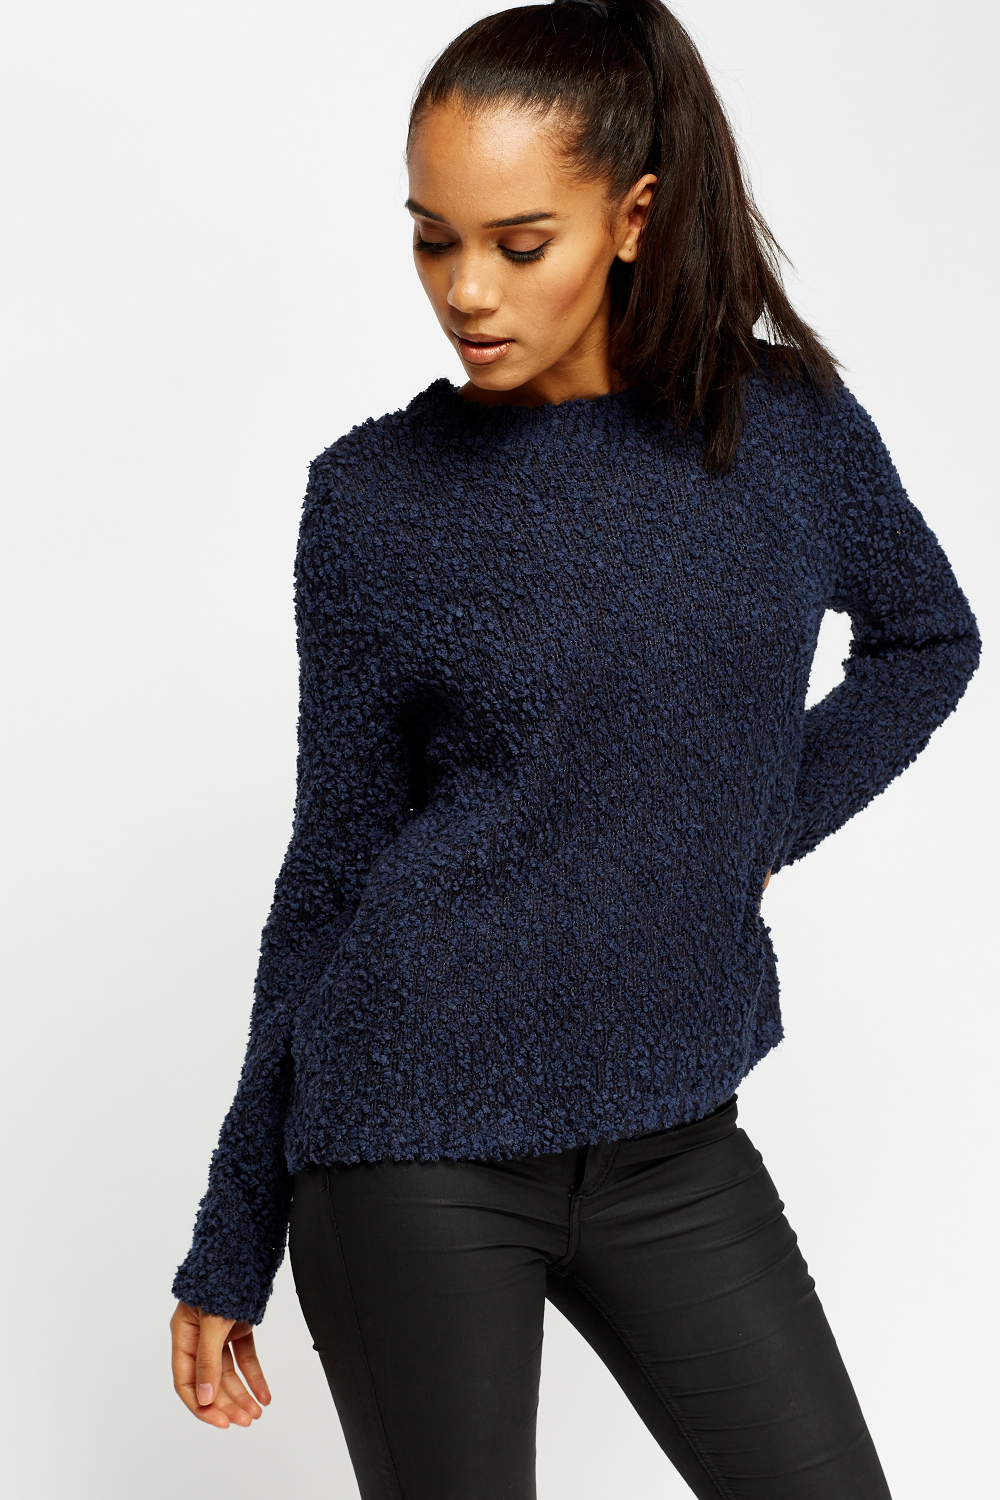 Bobble Knit Casual Jumper Just 163 5